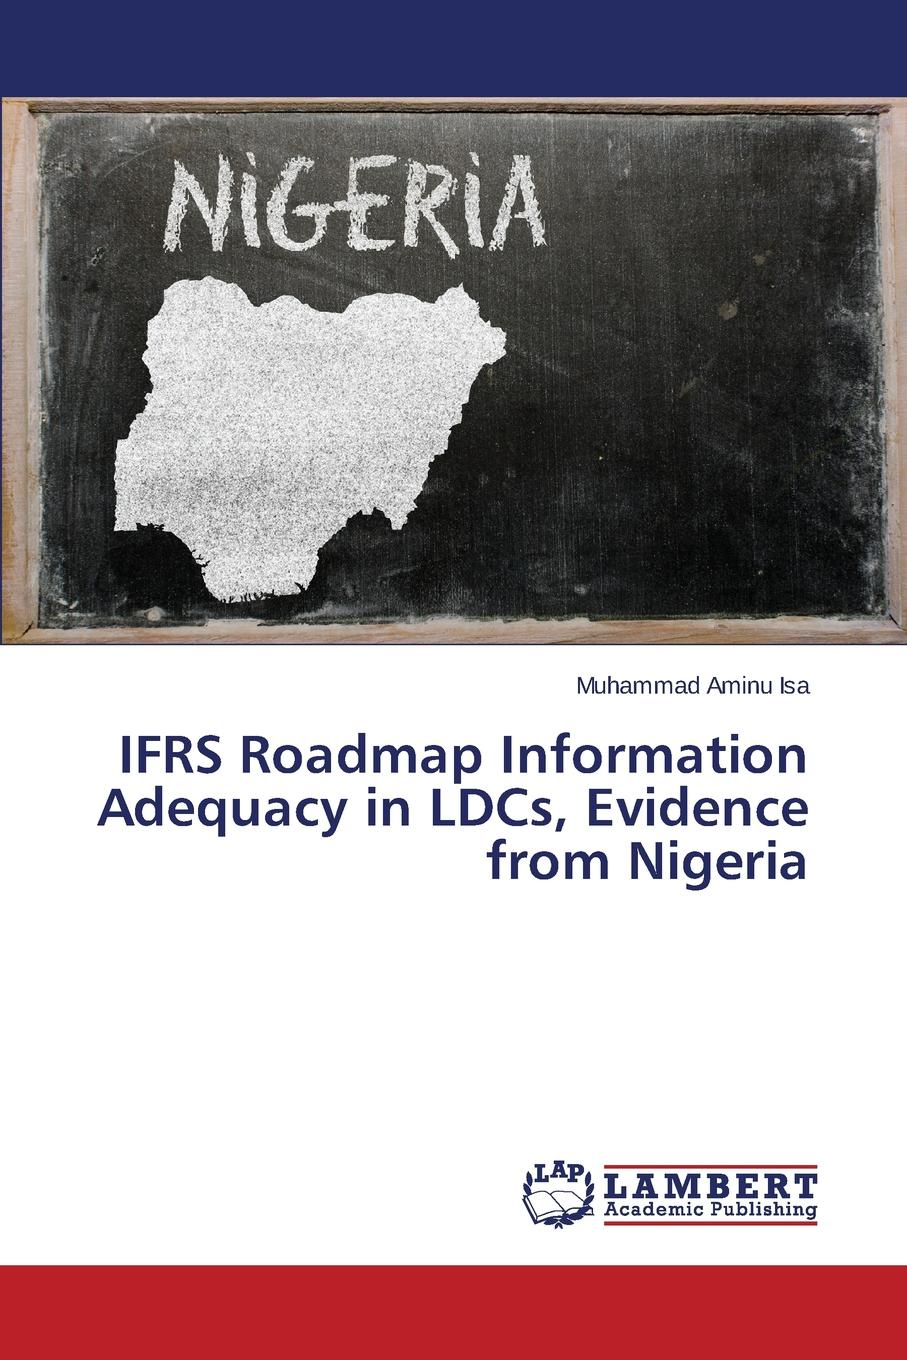 Isa Muhammad Aminu IFRS Roadmap Information Adequacy in LDCs, Evidence from Nigeria transition in crisis